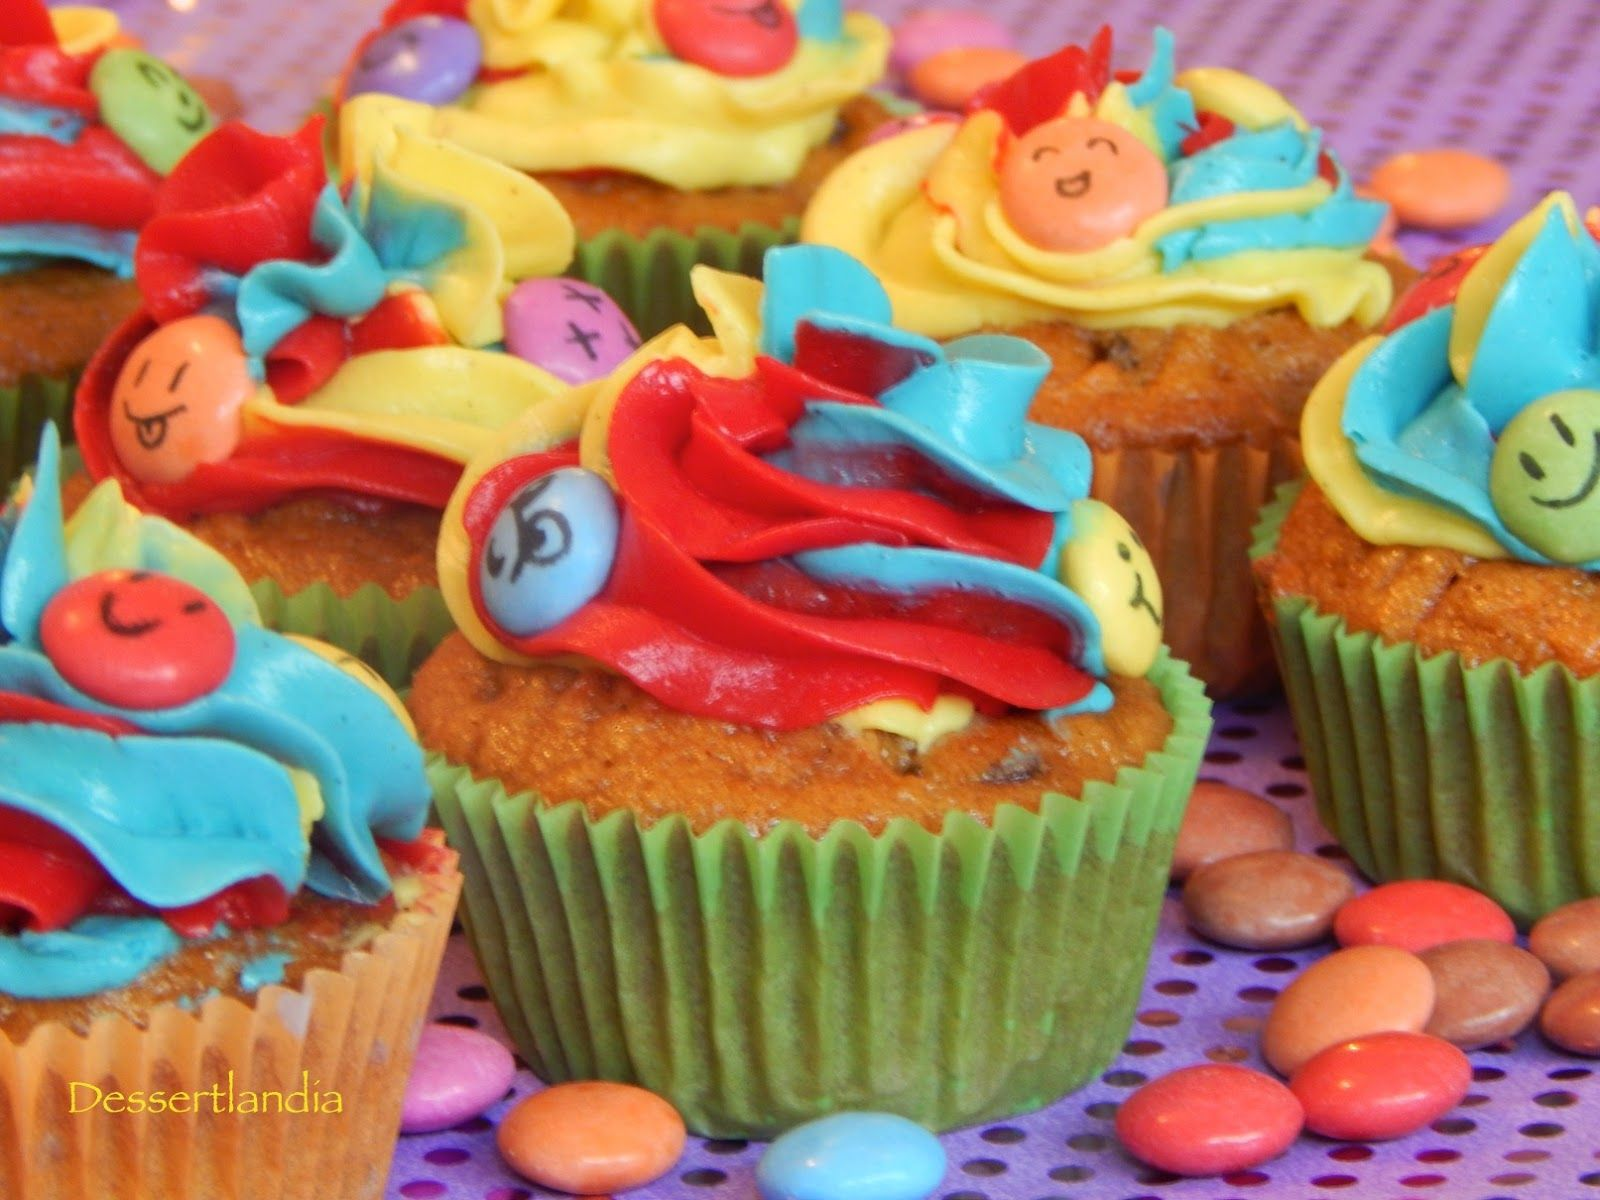 Dessertlandia: Smarties Party!! Carrot Cake Cupcakes in their fun outfits!